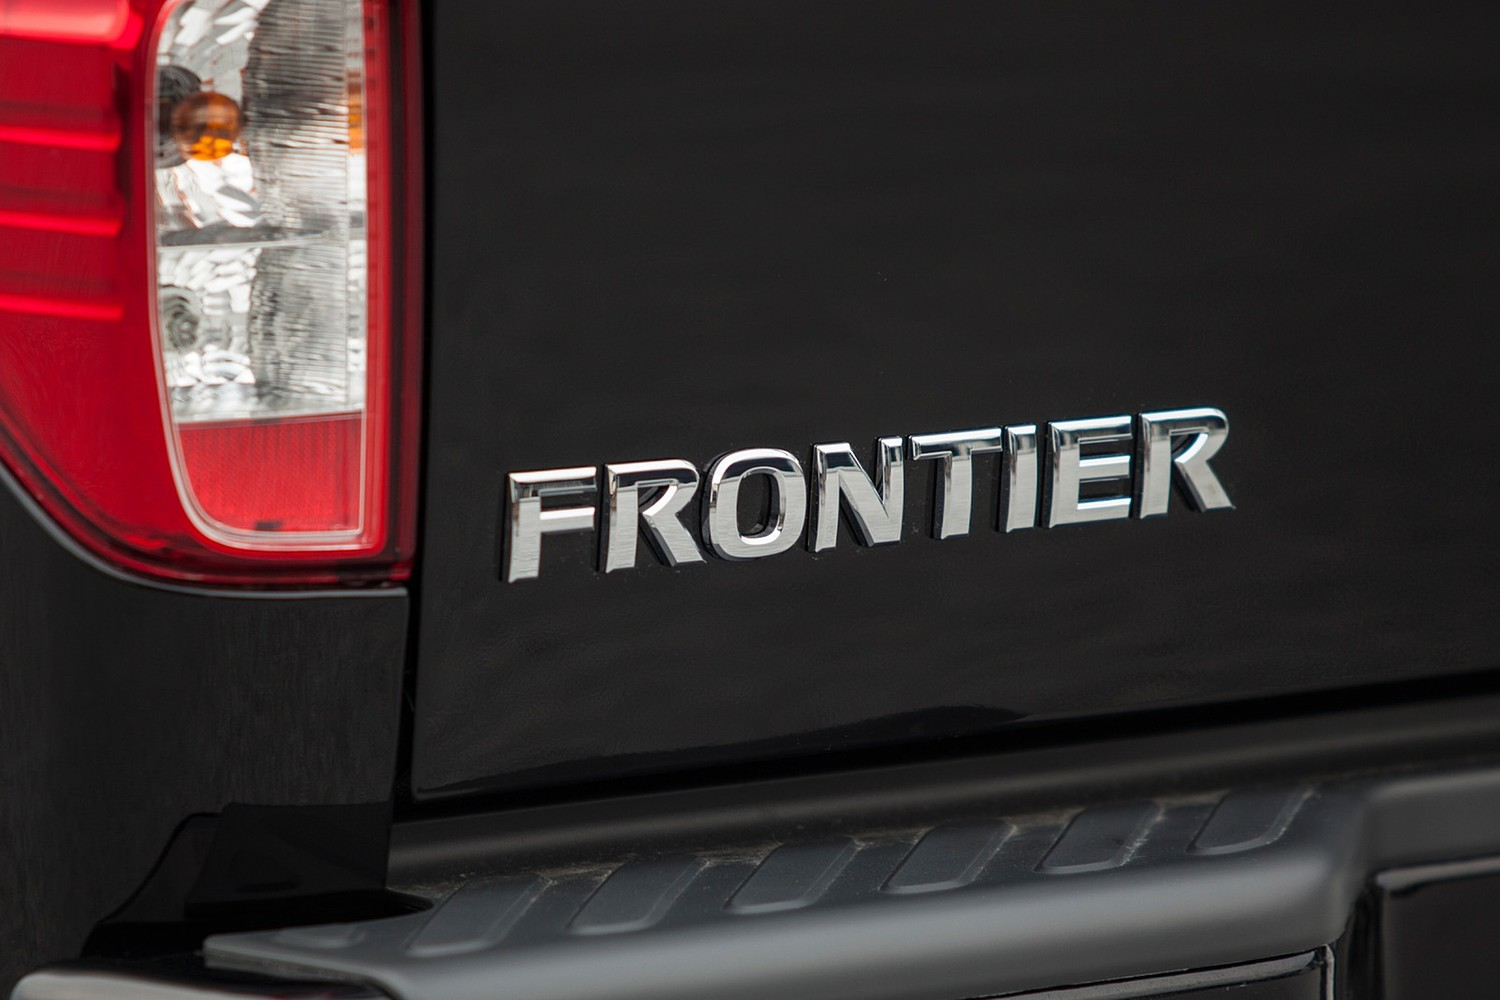 2016 Nissan Frontier PRO-4X Crew Cab Pickup Rear Badge